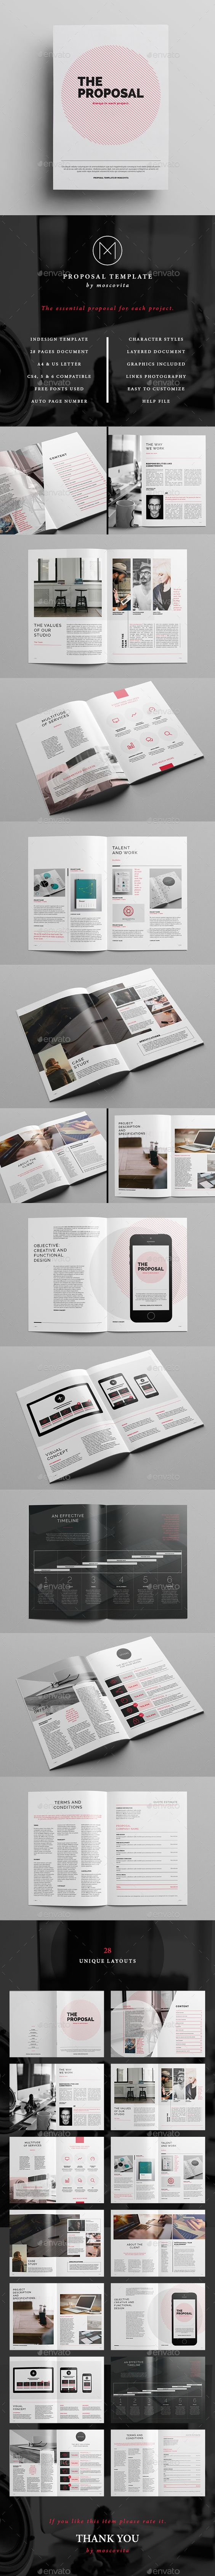 Proposal - #Proposals & Invoices Stationery Download here: https://graphicriver.net/item/proposal/11531351?ref=classicdesignp